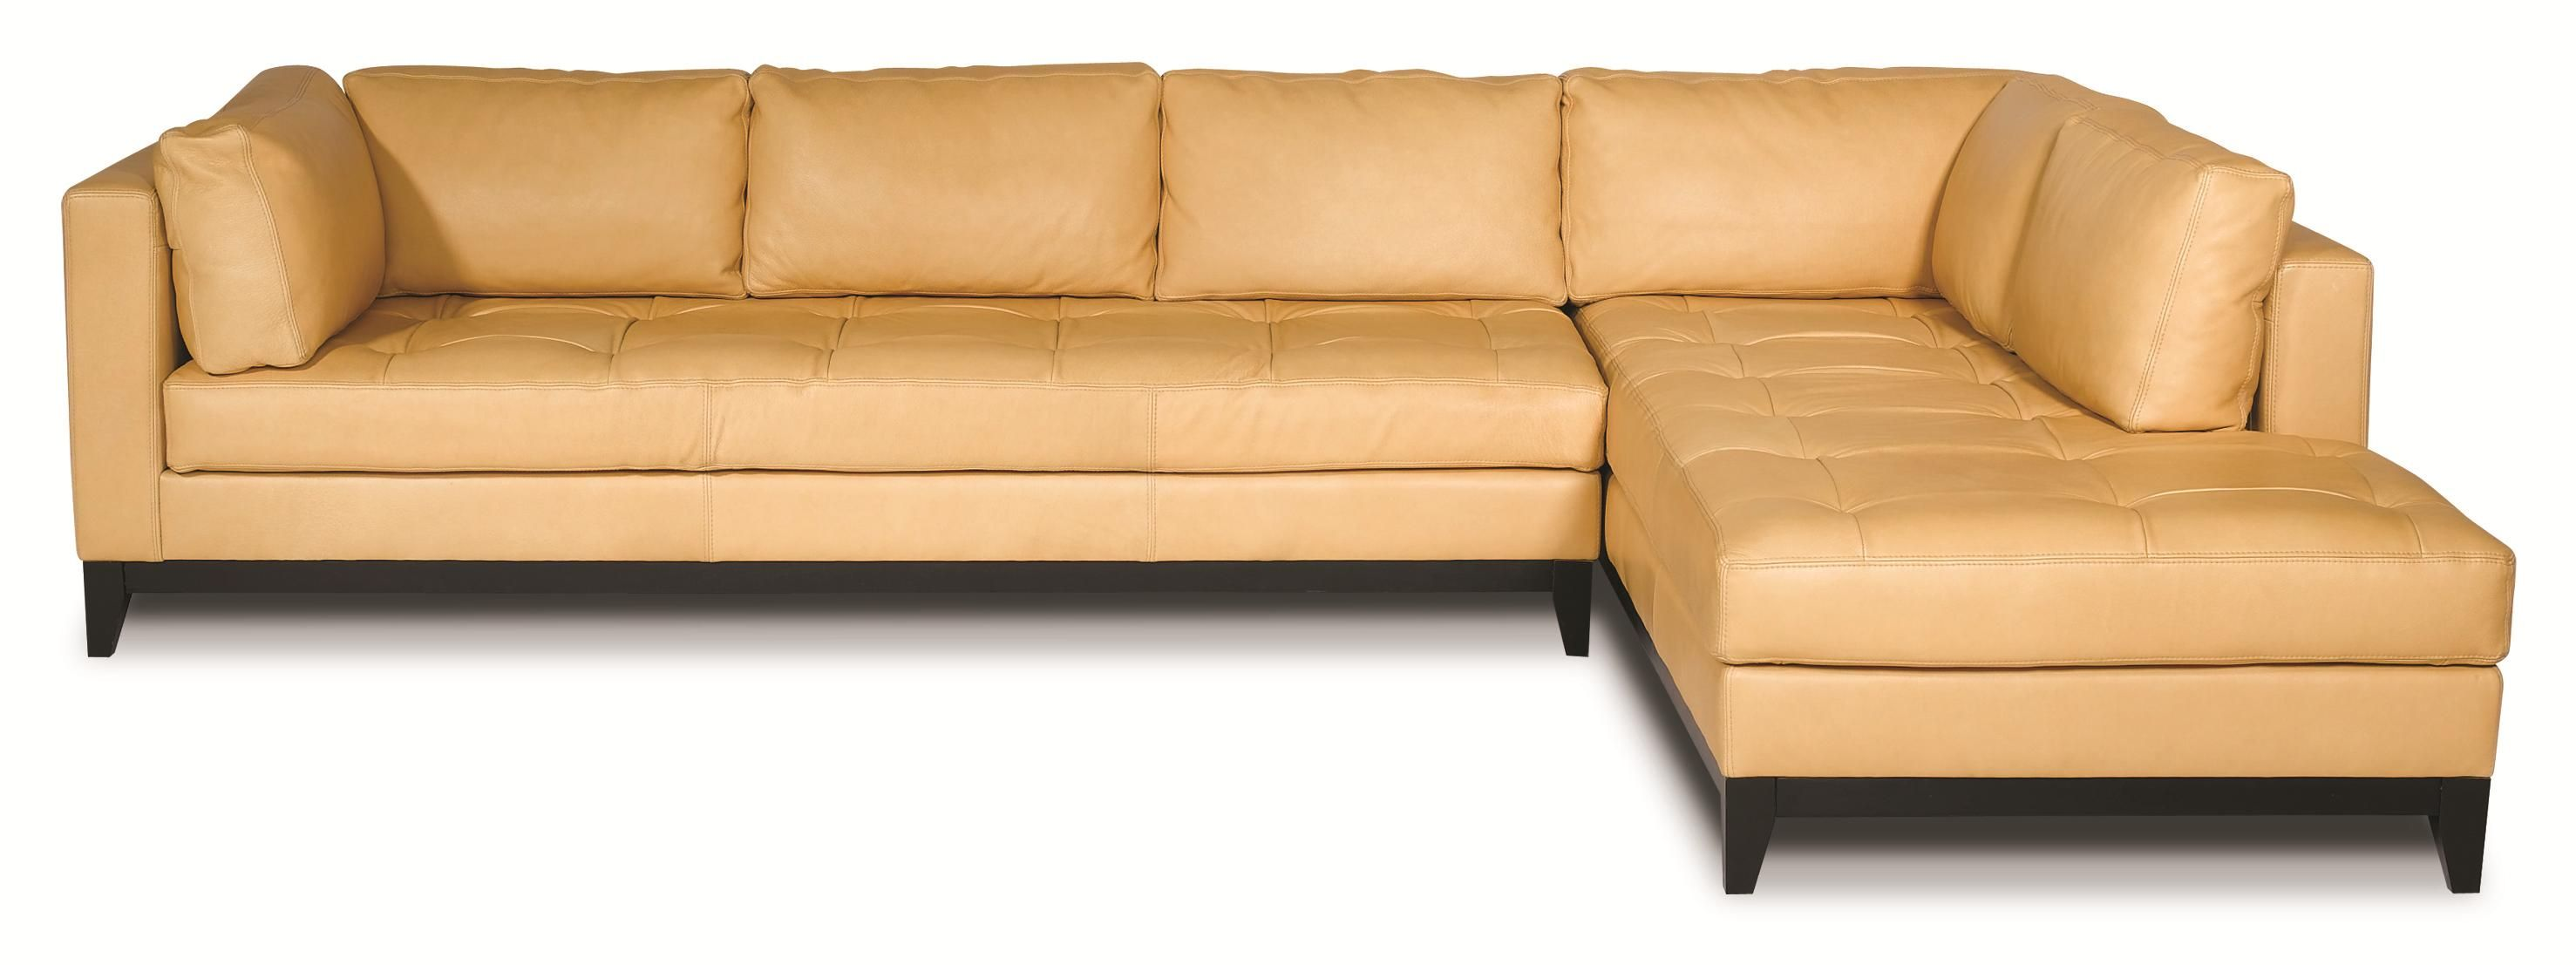 Crystal Cove Sectional Sofa by Elite Leather